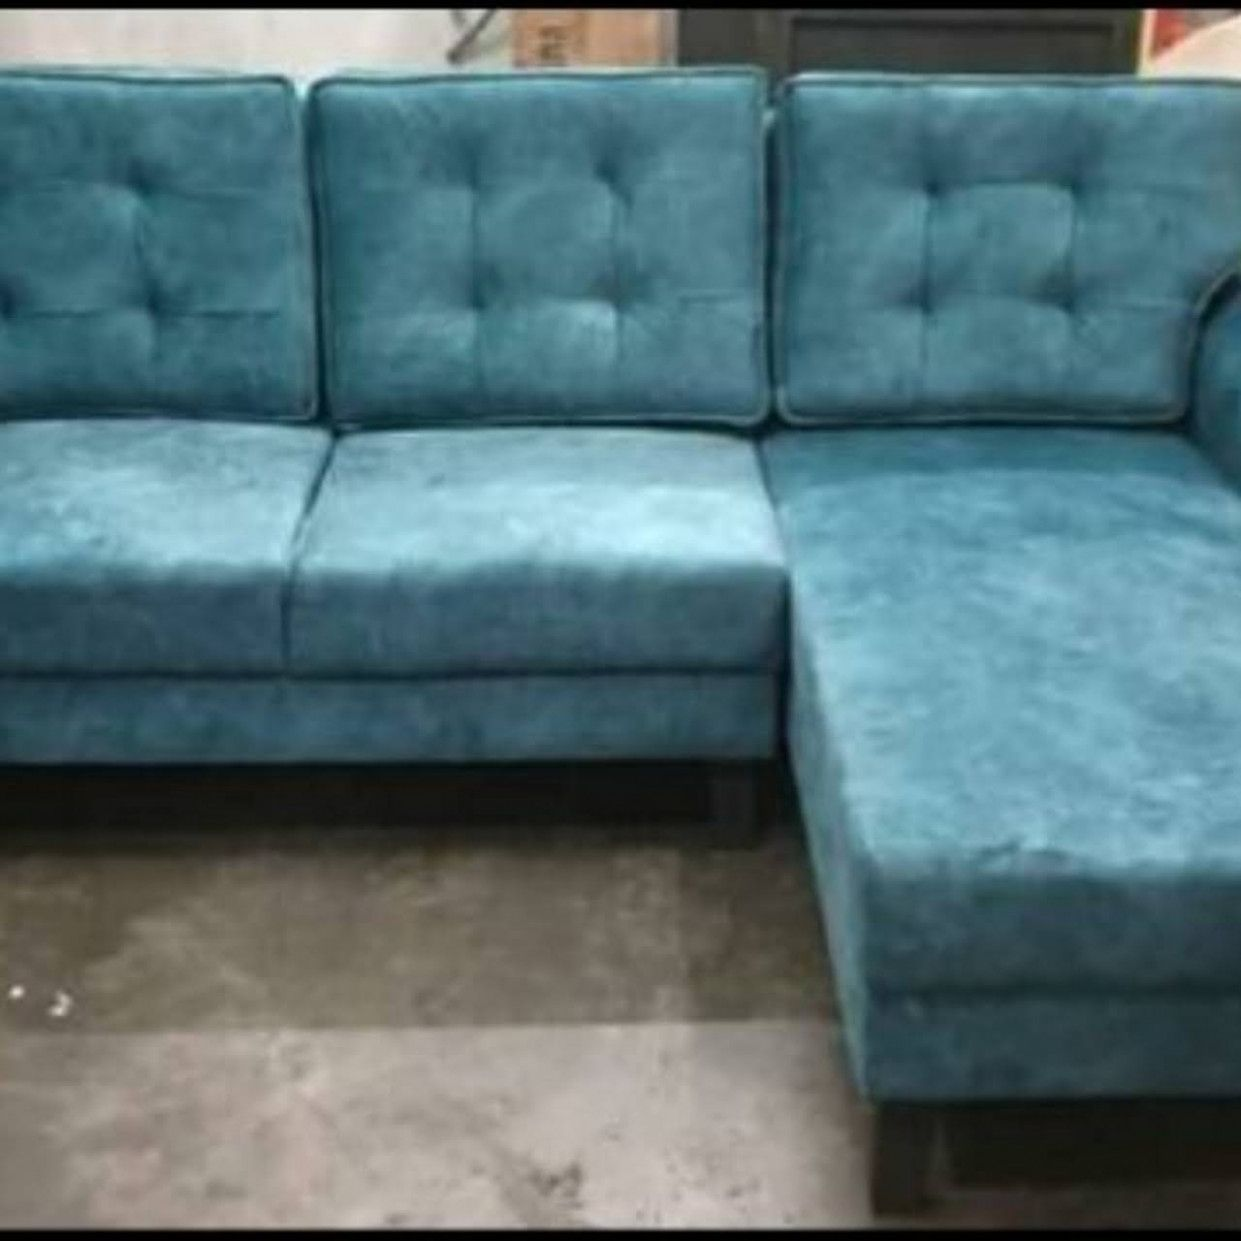 Olx Single Sofa Click On The Image To Watch The Tvc Sofa Set Furniture Furnace Shop In Kolkata Olx Single Sofa Olx Singl Single Sofa Sofa Set Sectional Couch